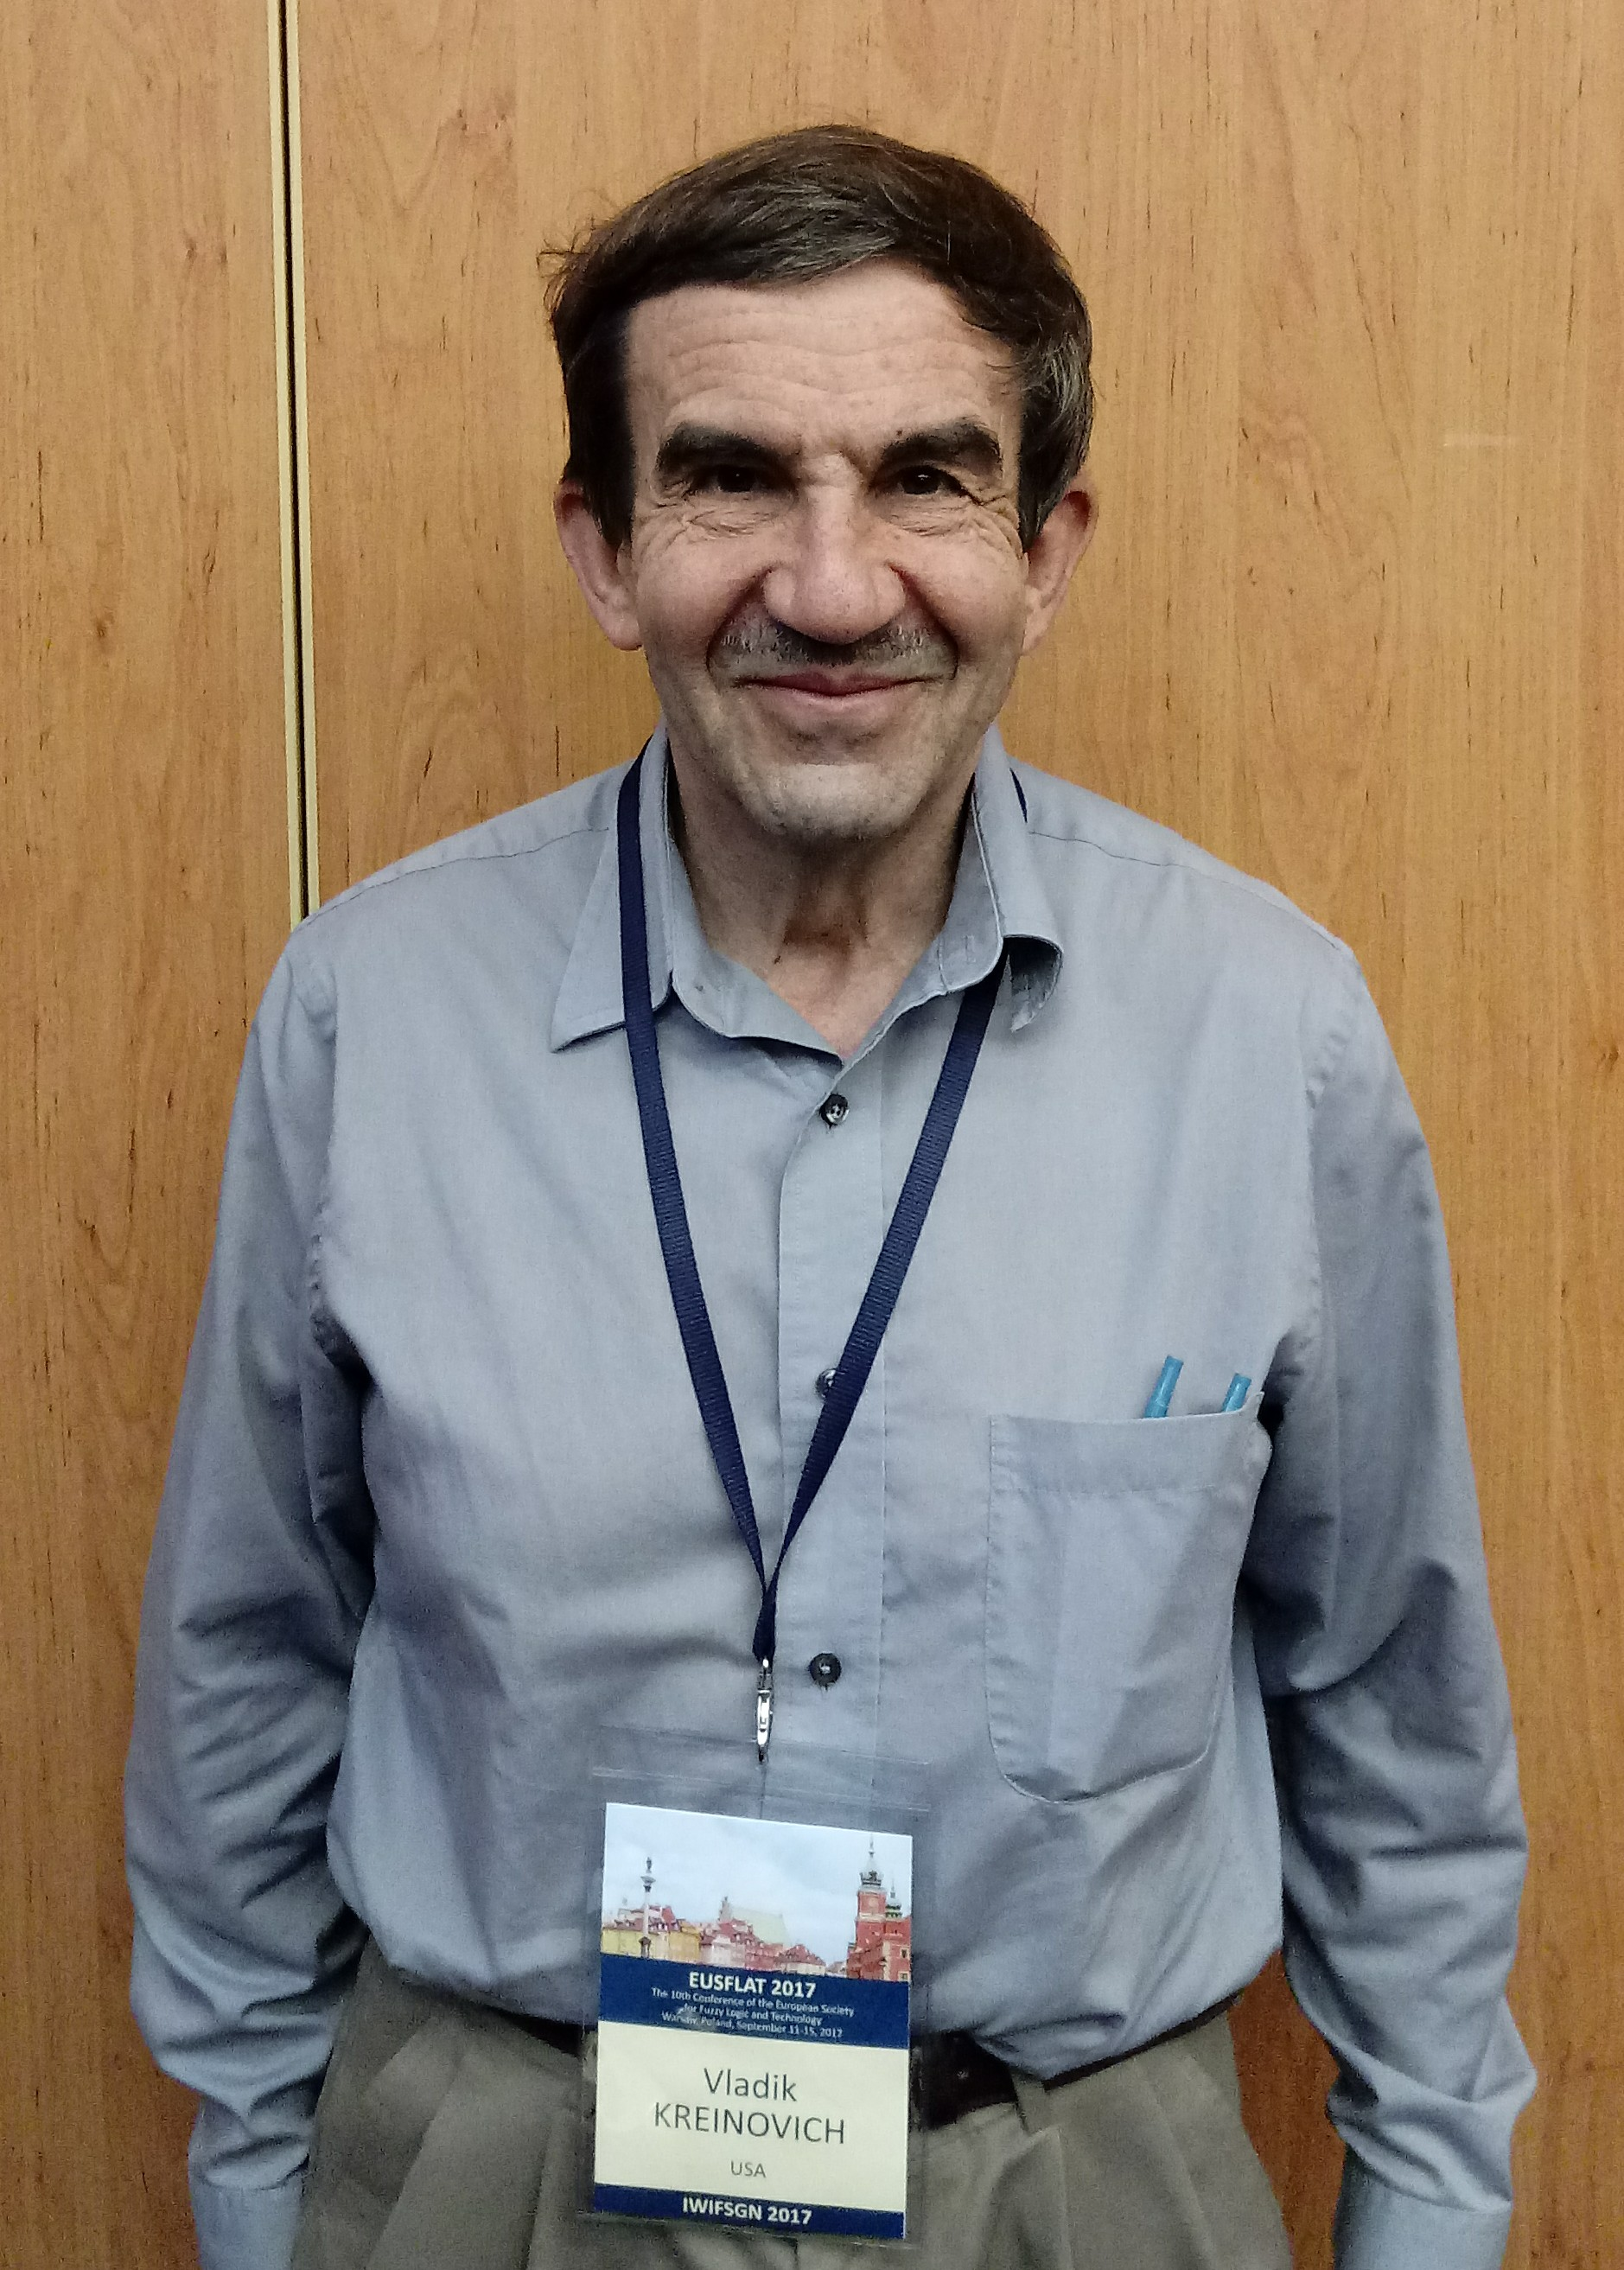 Prof. Vladik Kreinovich at the 10th EUSFLAT Conference, 12 September 2017, Warsaw, Poland